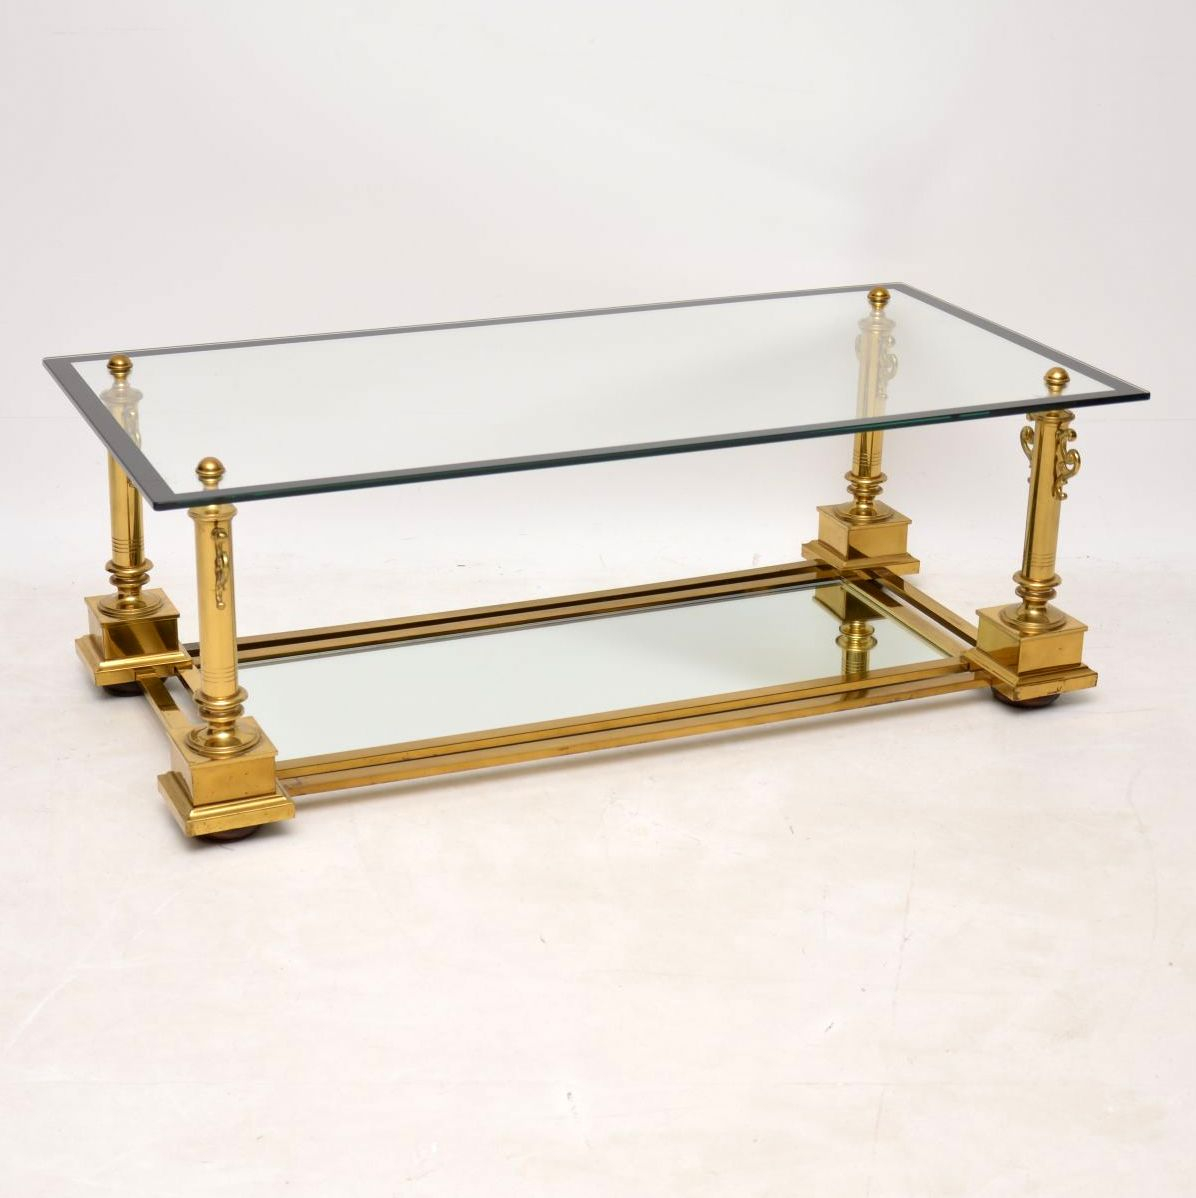 Maison Charles Coffee Table In Brass Glass Made In France Vintage intended for measurements 1196 X 1198